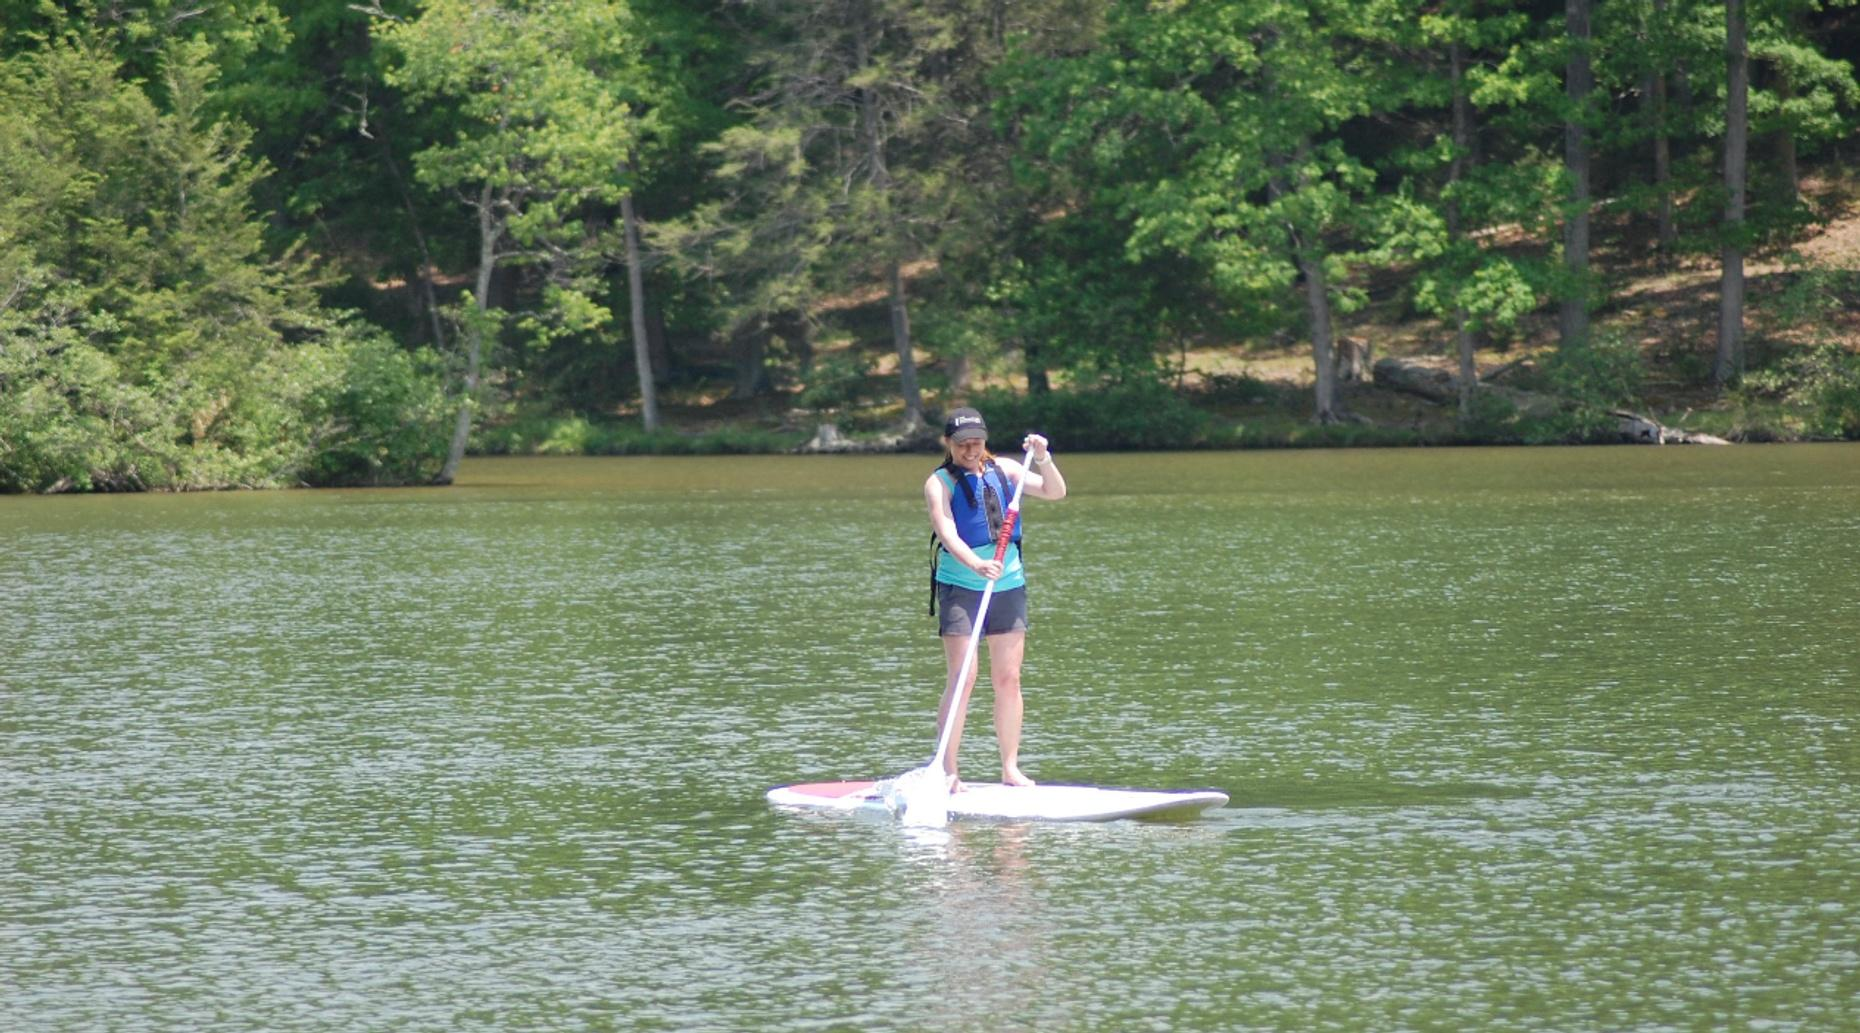 Stand-Up Paddleboard Rental in Red Wing